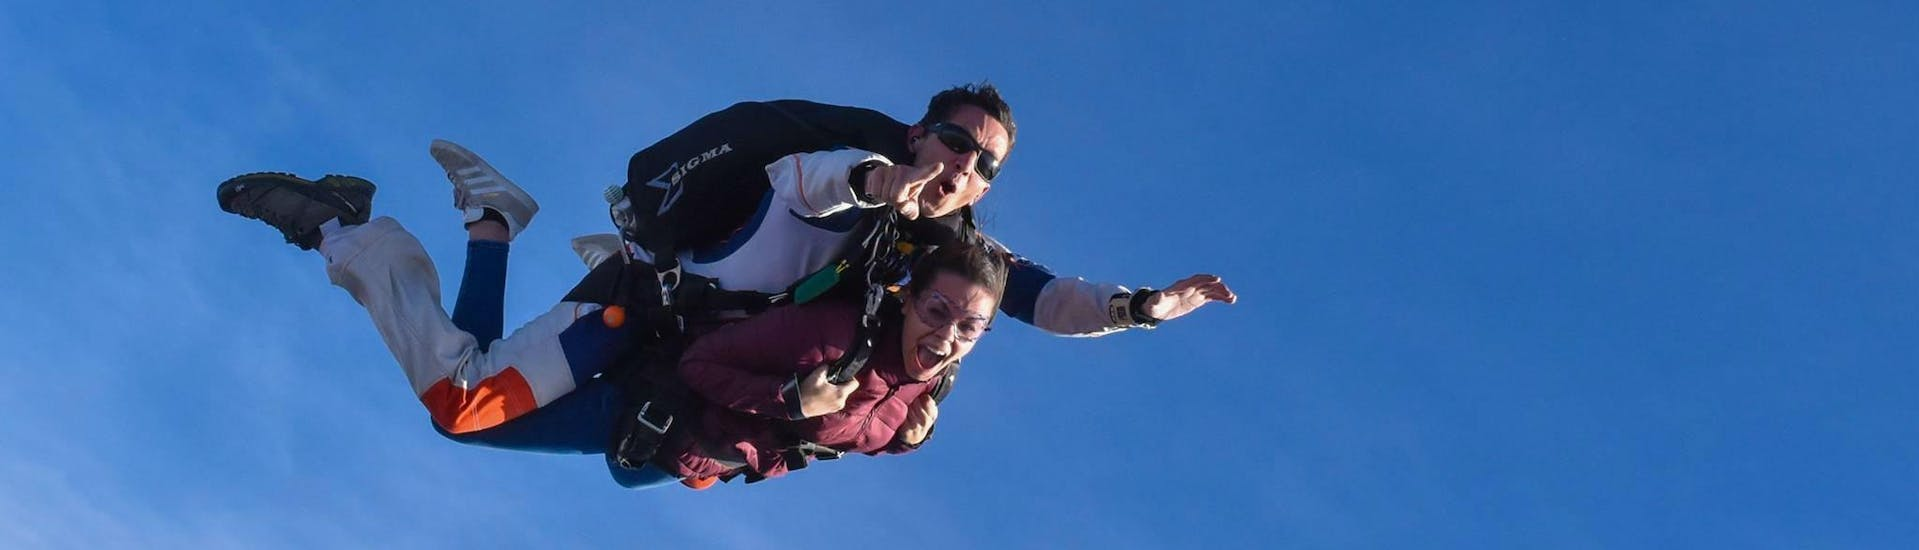 A tandem master from Skydive Center has jumped with a passenger off the plane at an altitude of 4000m and is free falling.